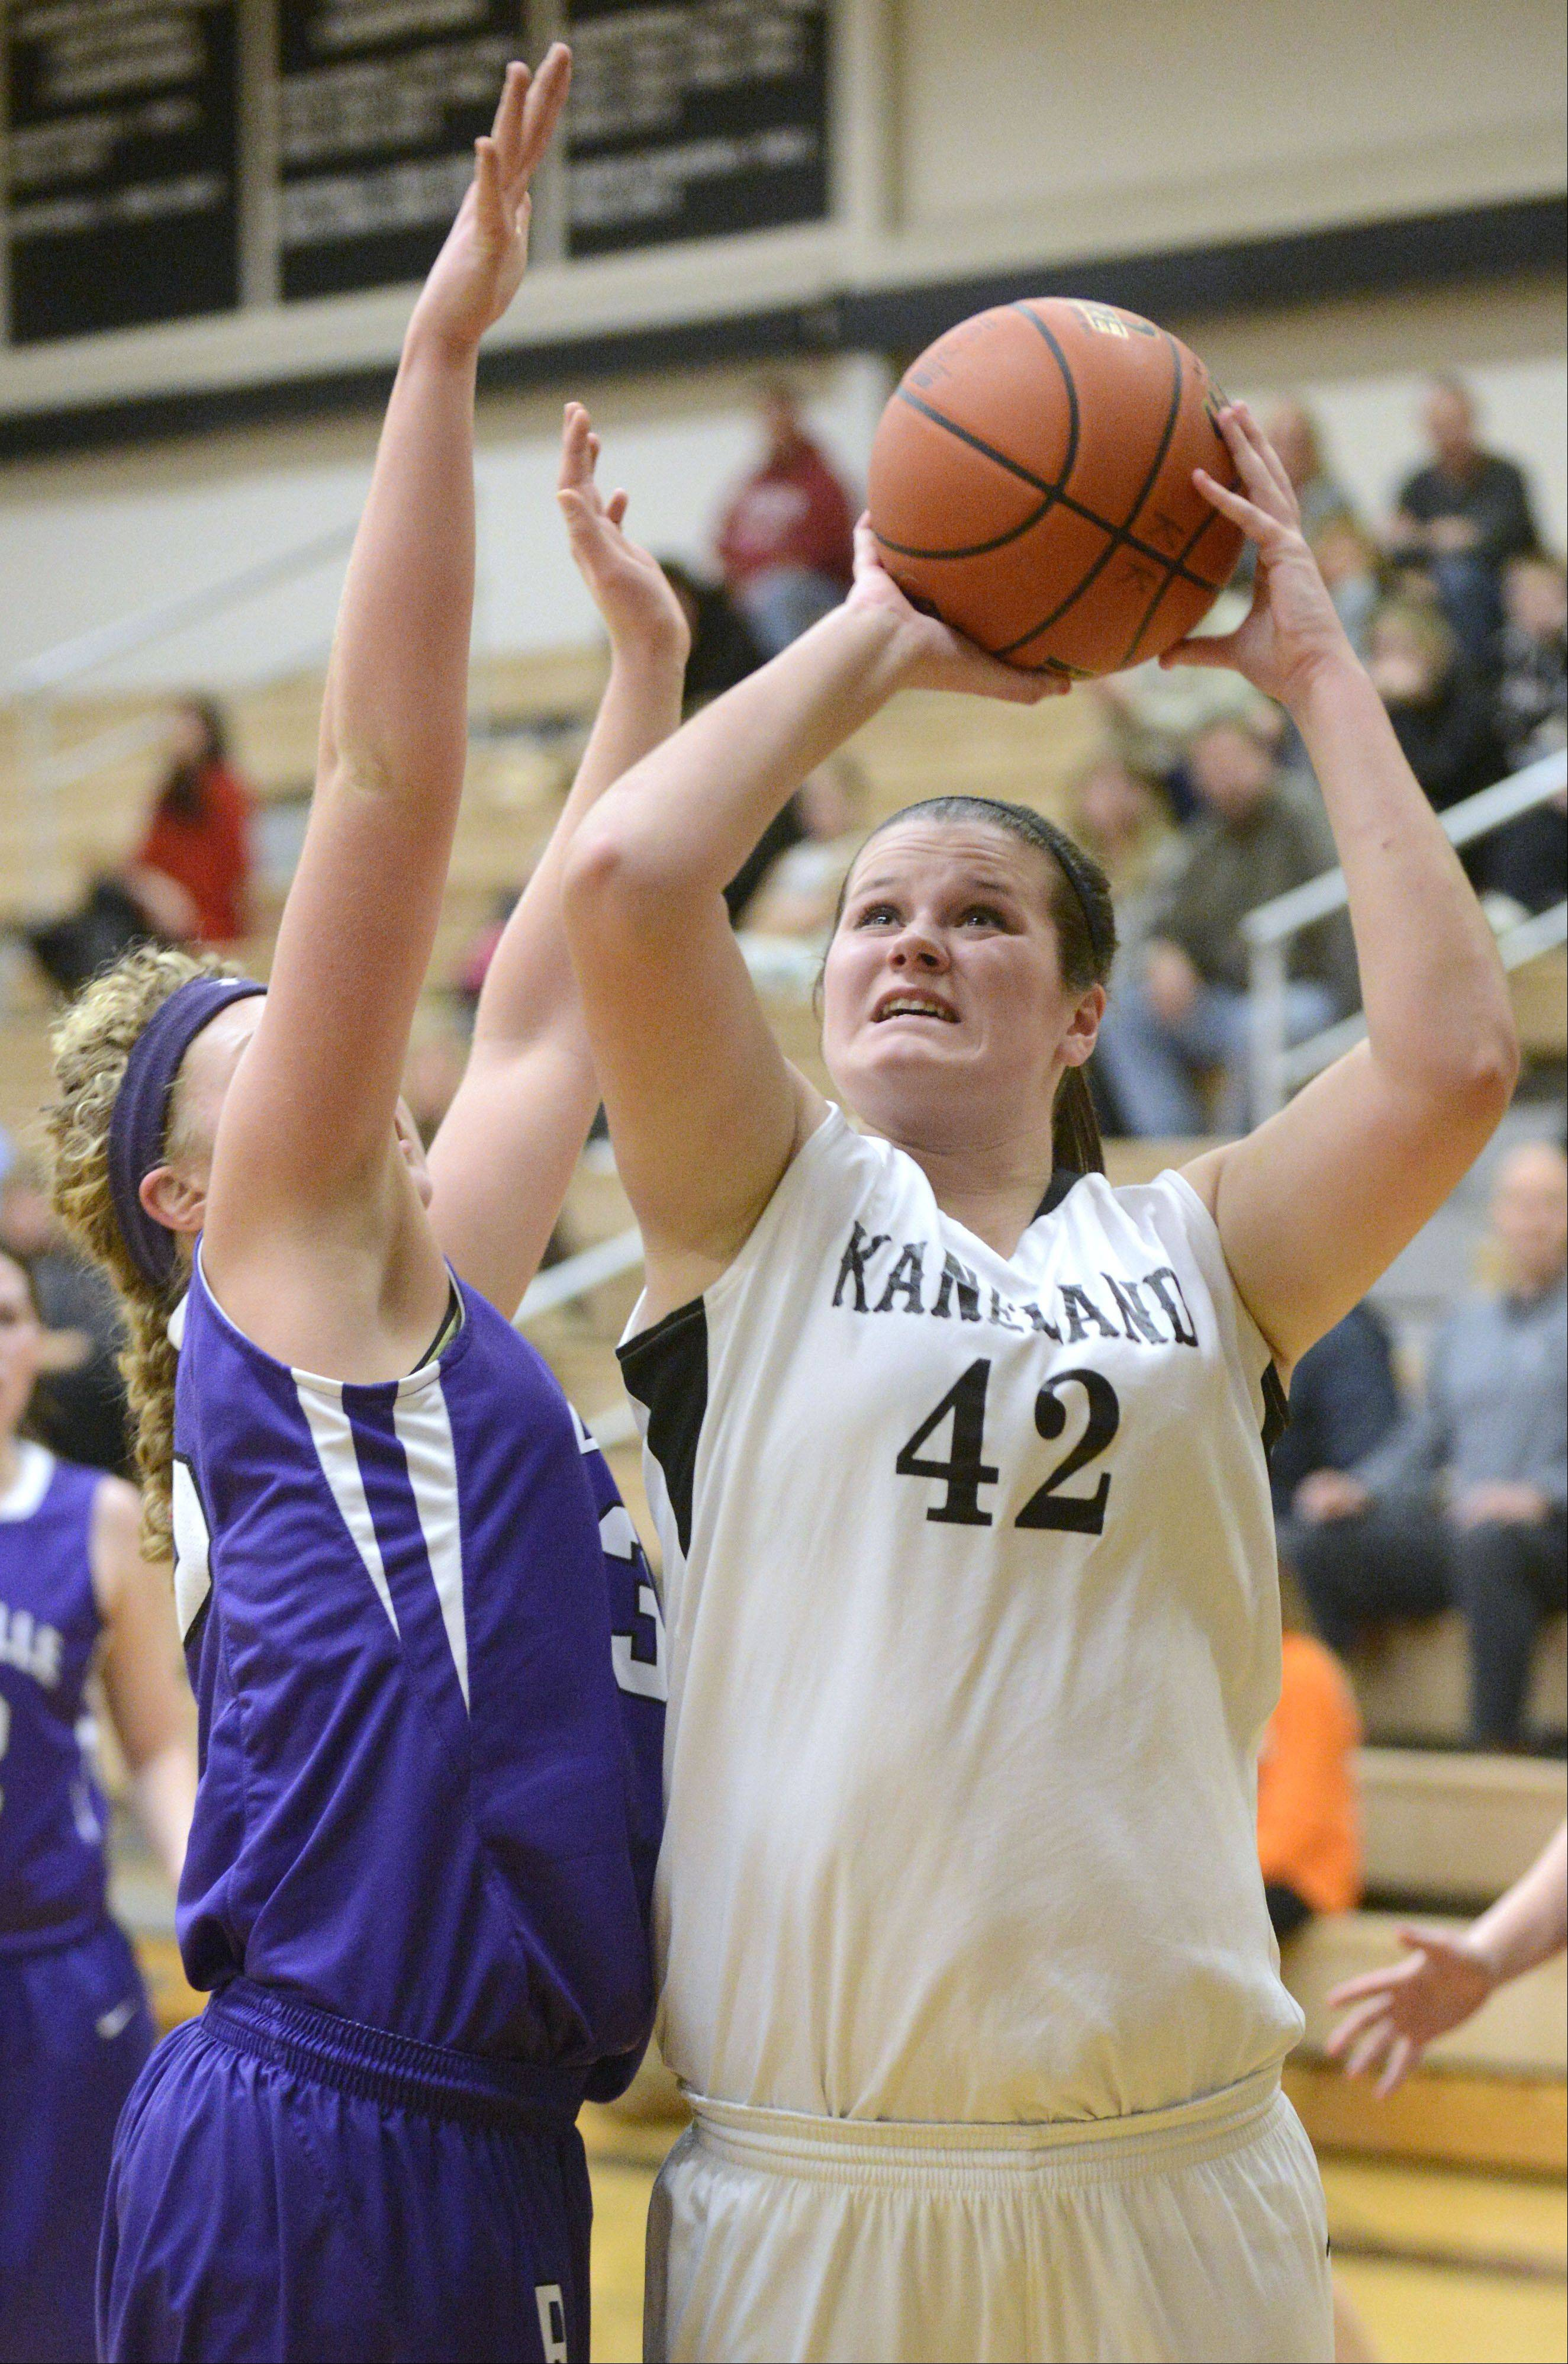 Rochelle's Kaneland's Kelly Wallner in the second quarter on Tuesday, December 10. 33 42 second